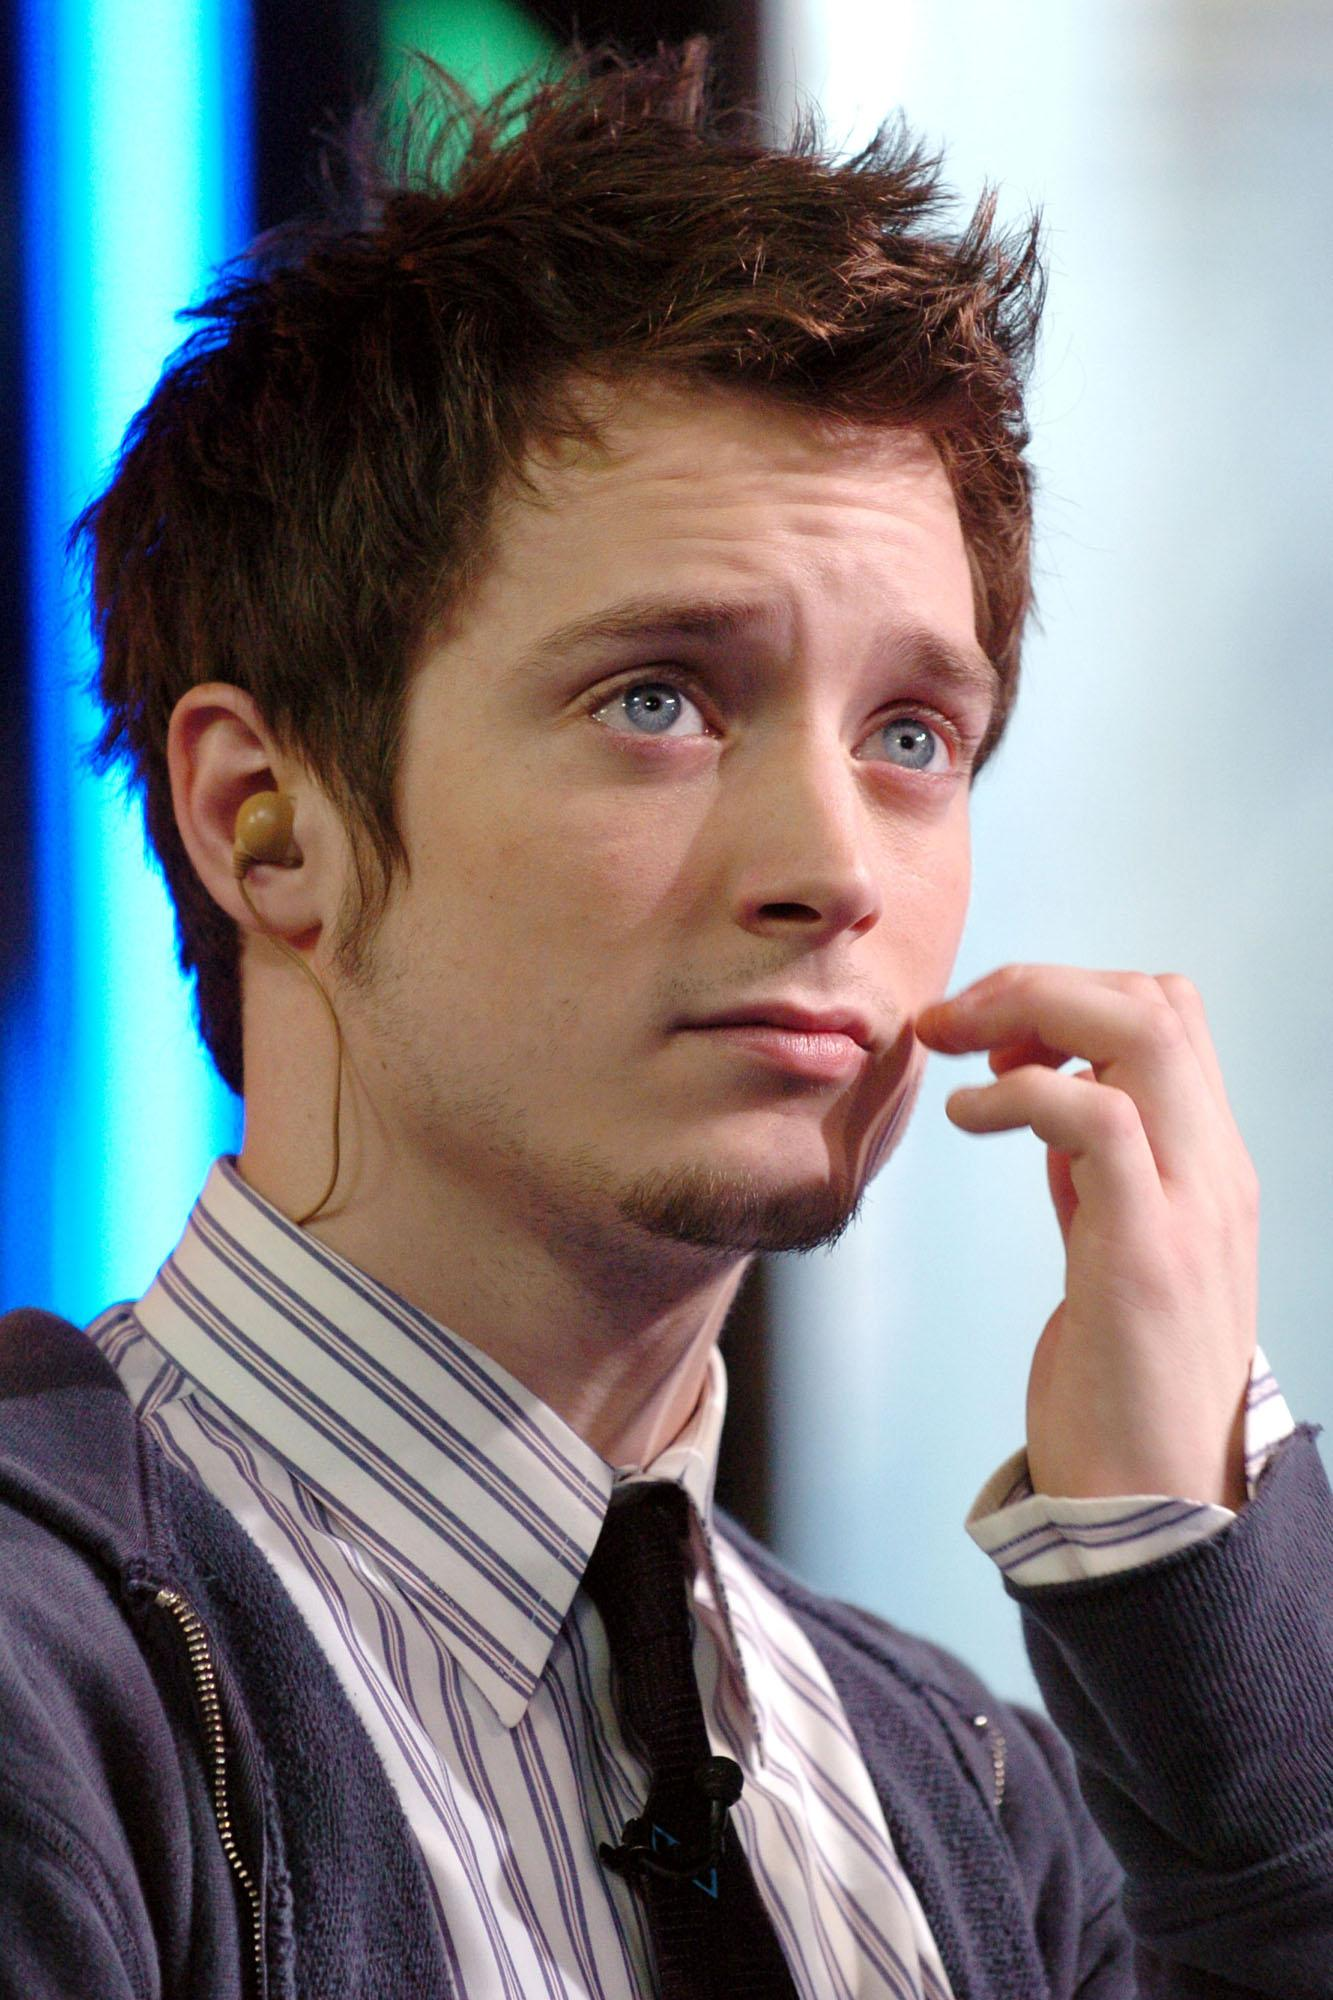 Elijah Wood Wallpapers High Quality